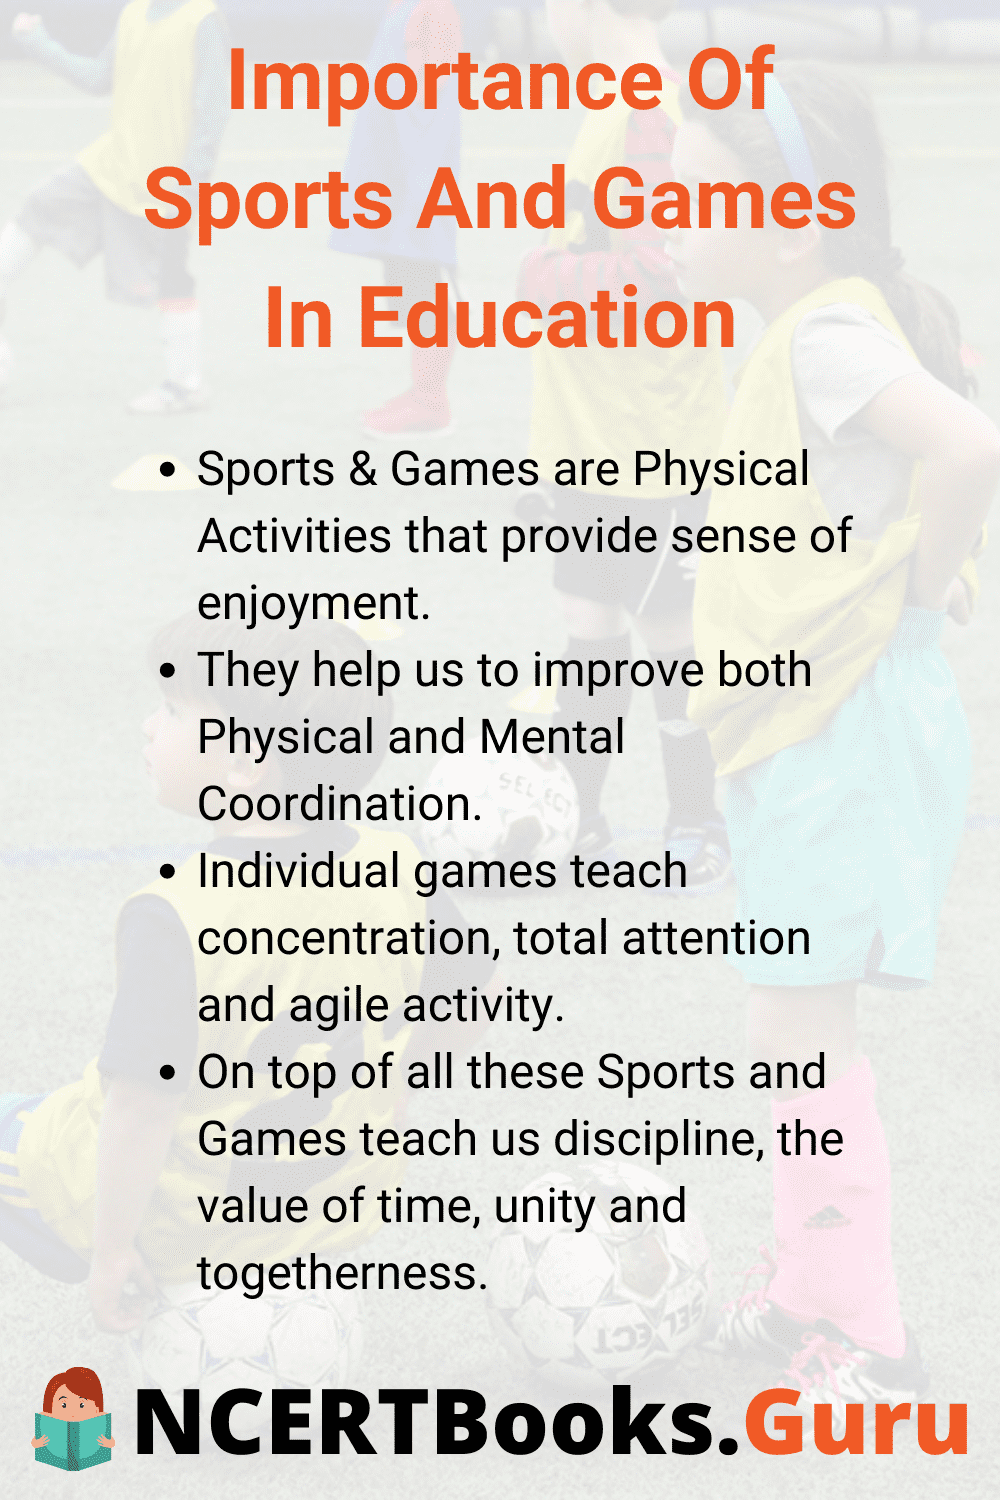 Importance Of Sports And Games In Education Essay